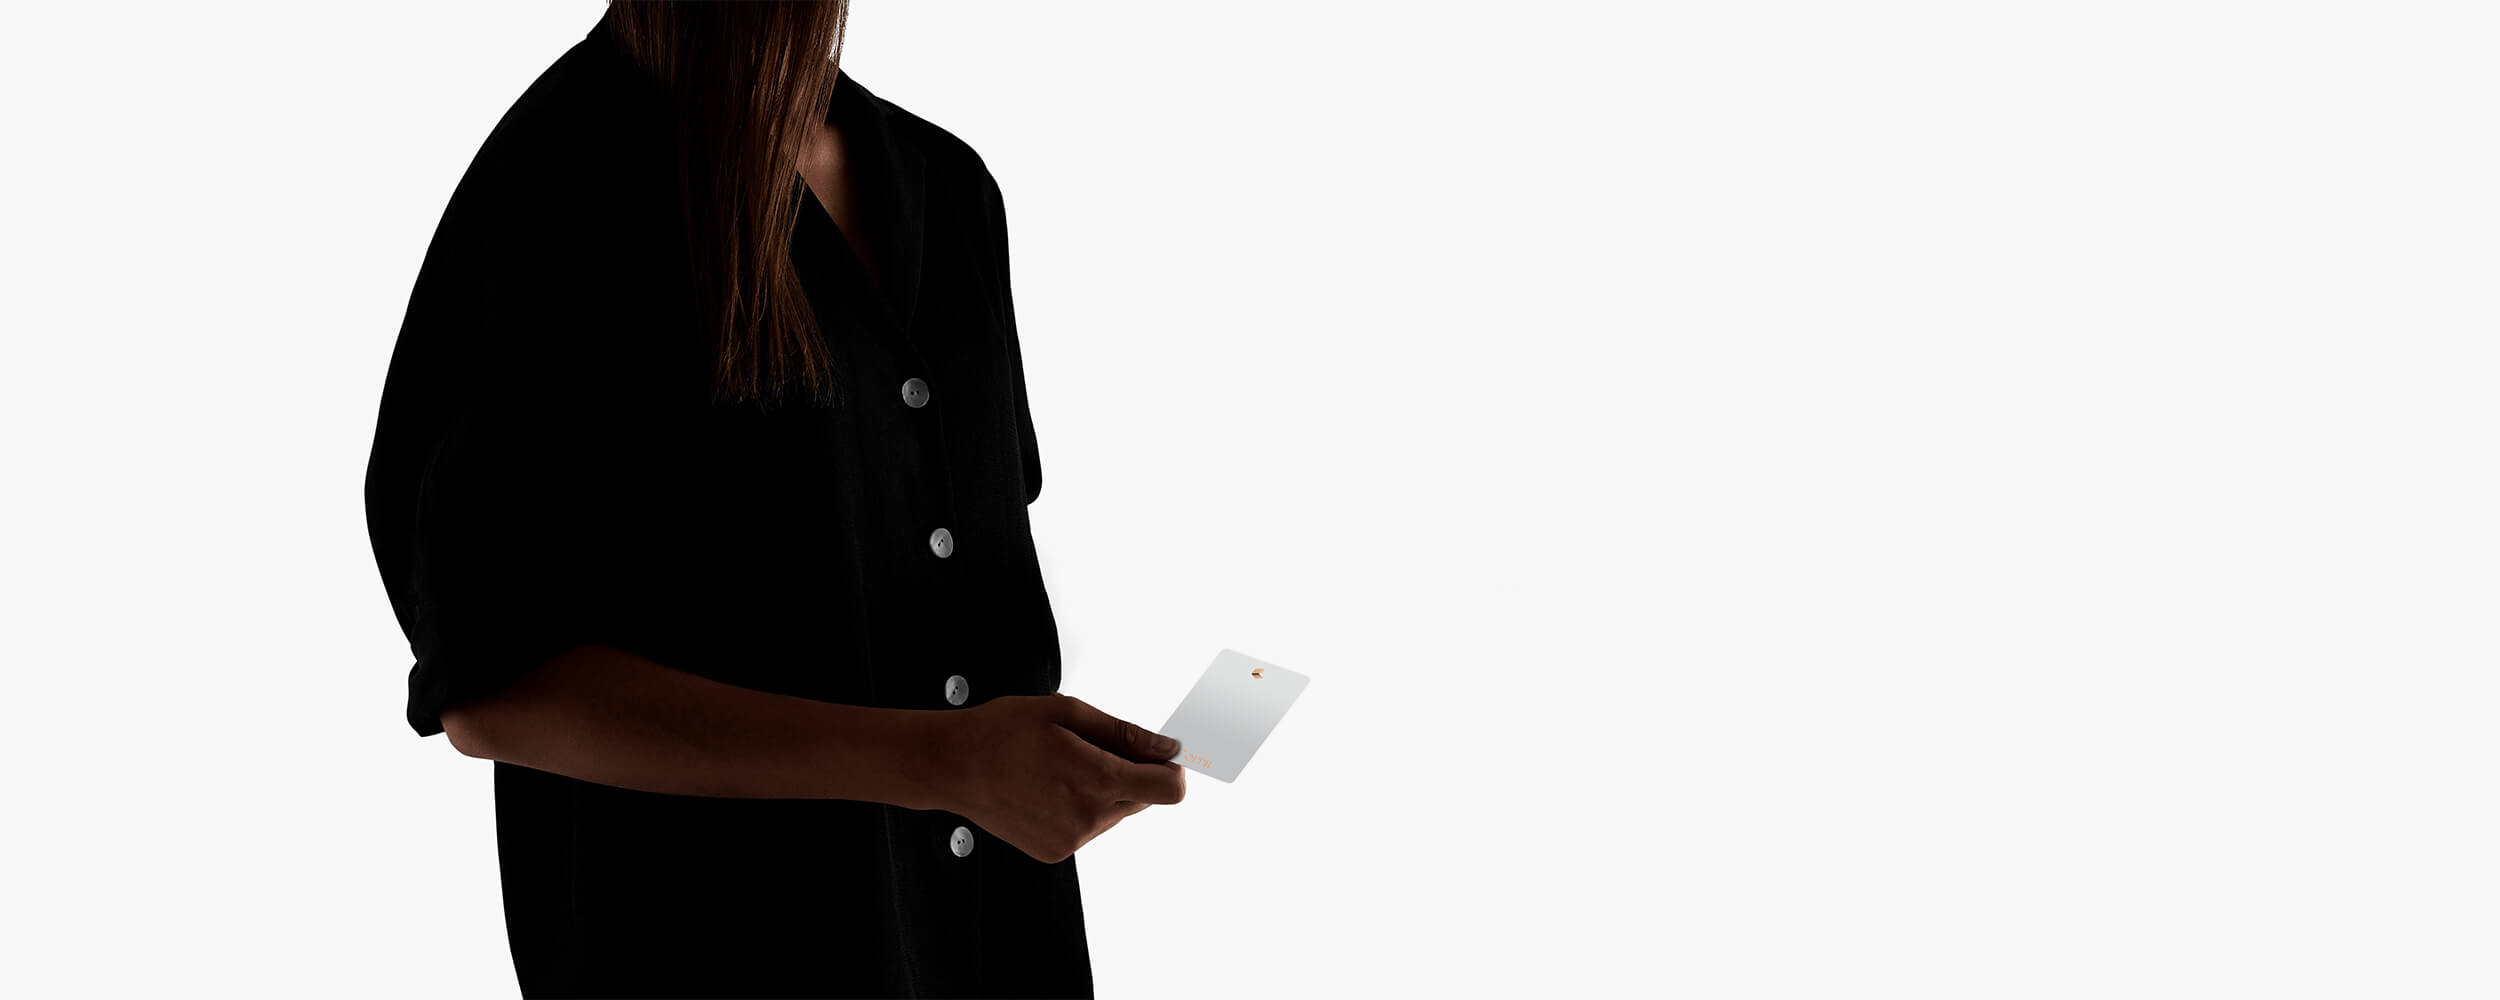 Image of a woman shown from the shoulder down holding a white coppr smart card. She is being illuminated mostly by the infinite white background behind her.